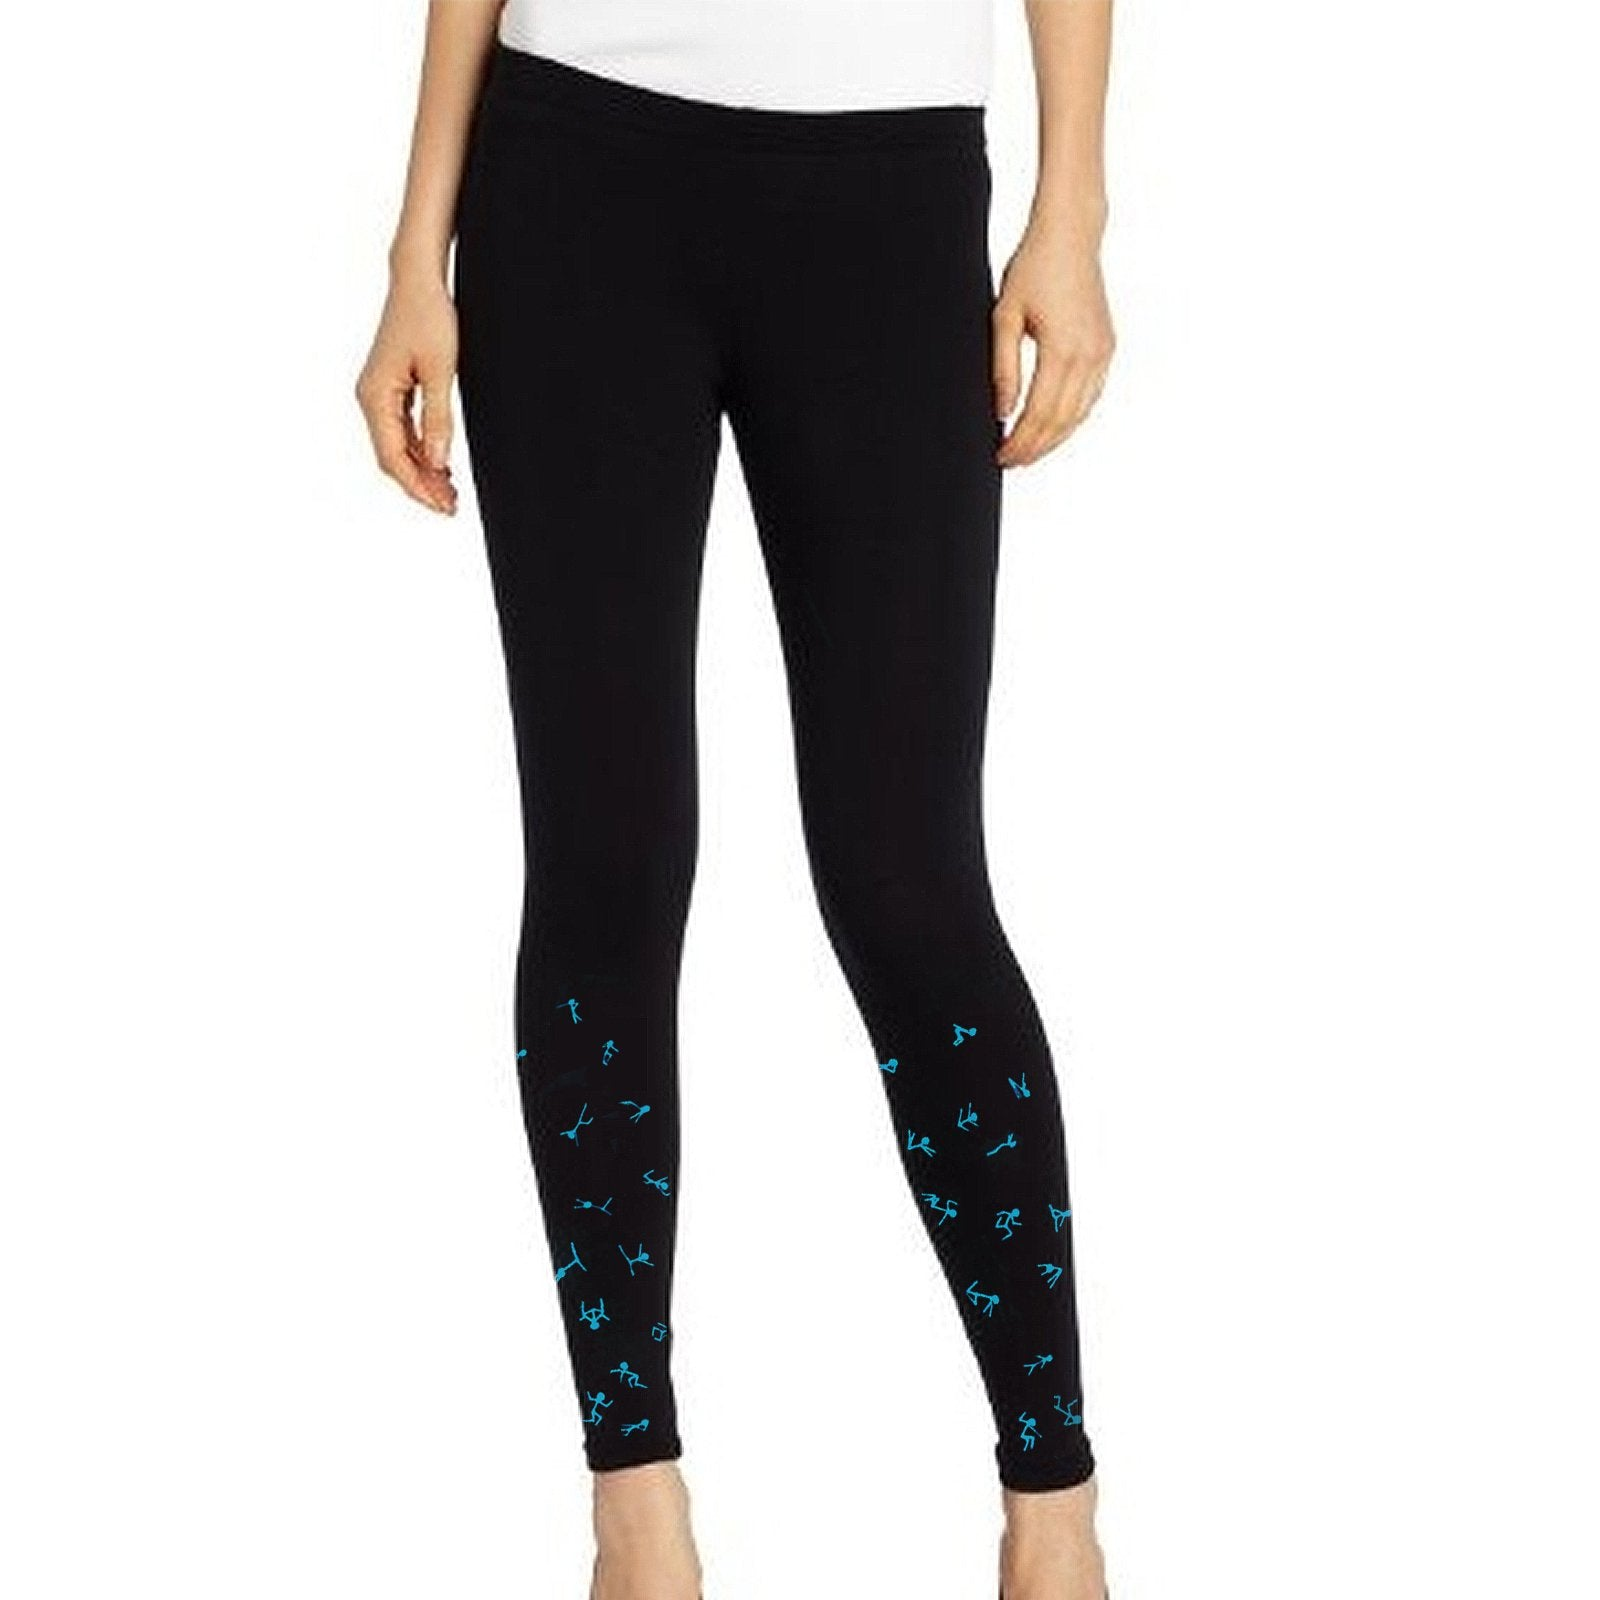 Leggings - Stick Figure Black Leggings